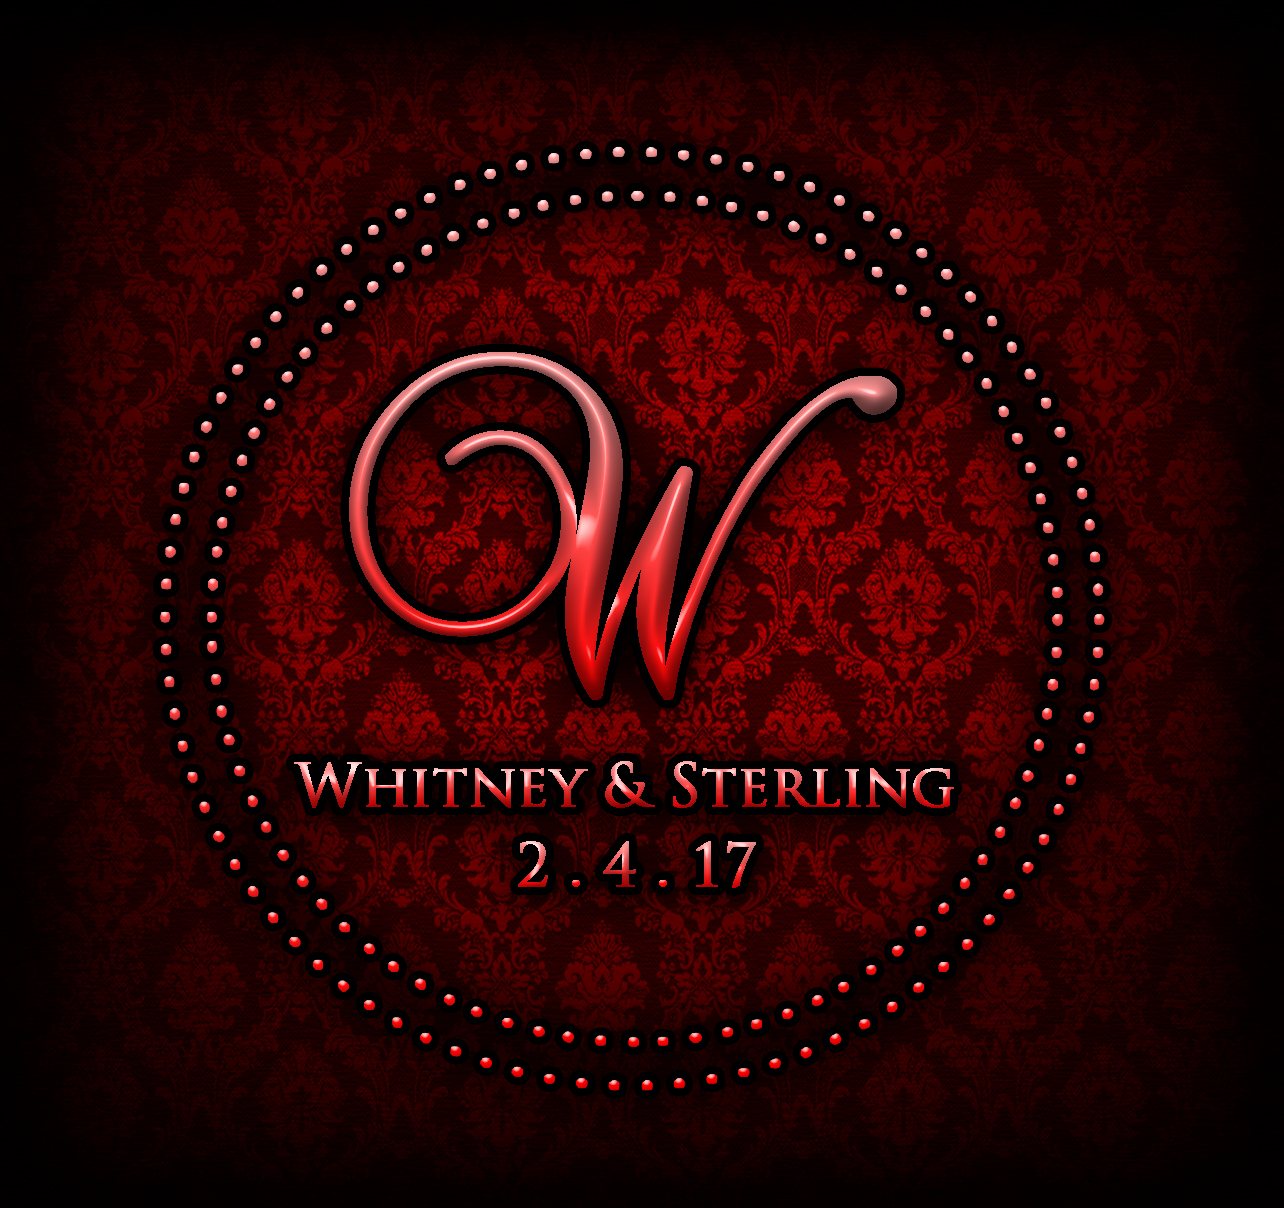 WHITNEYandSTERLING2monogram.jpg